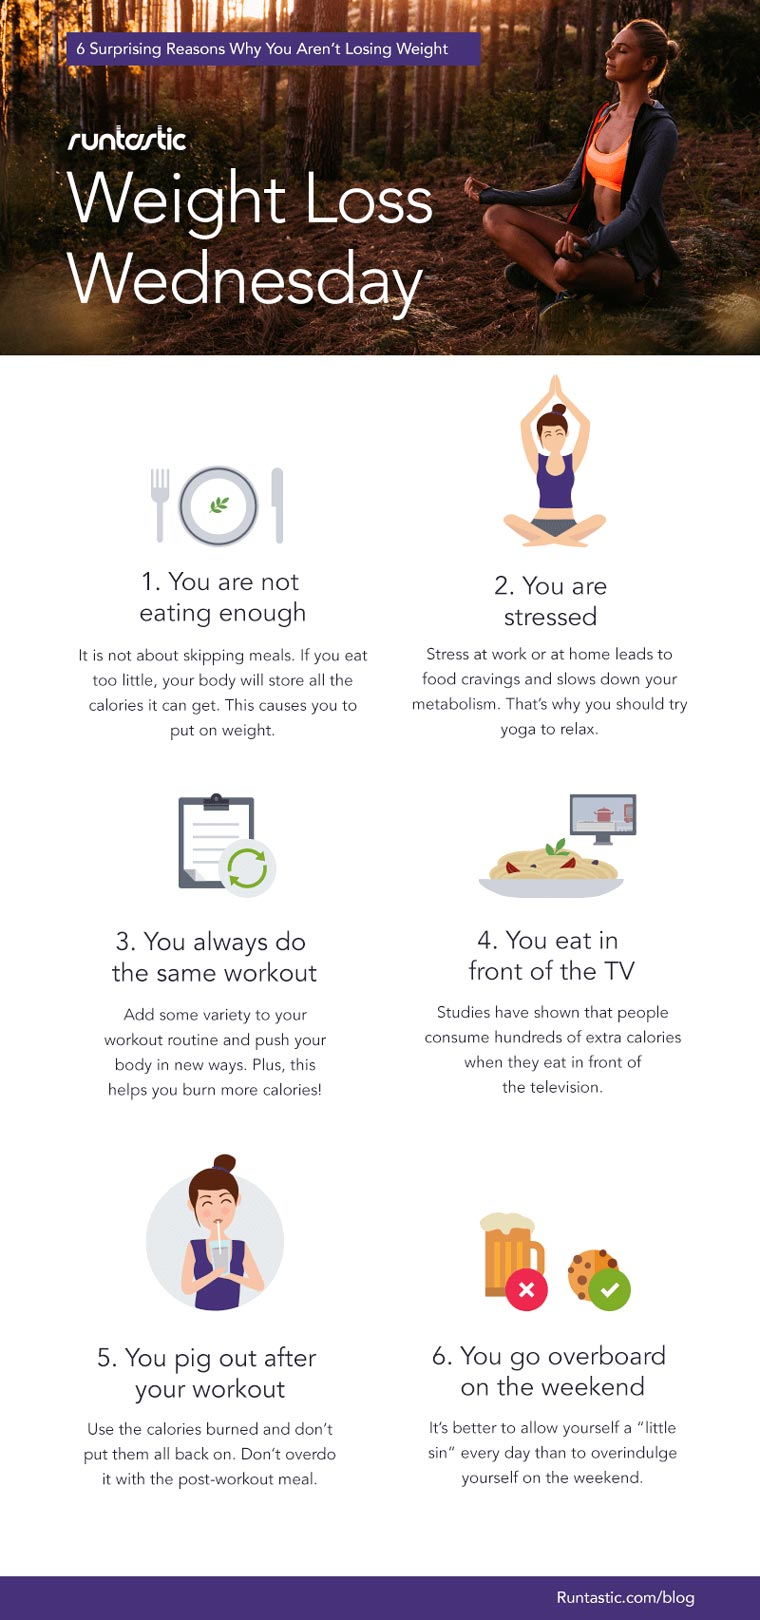 reasons-not-losing-weight